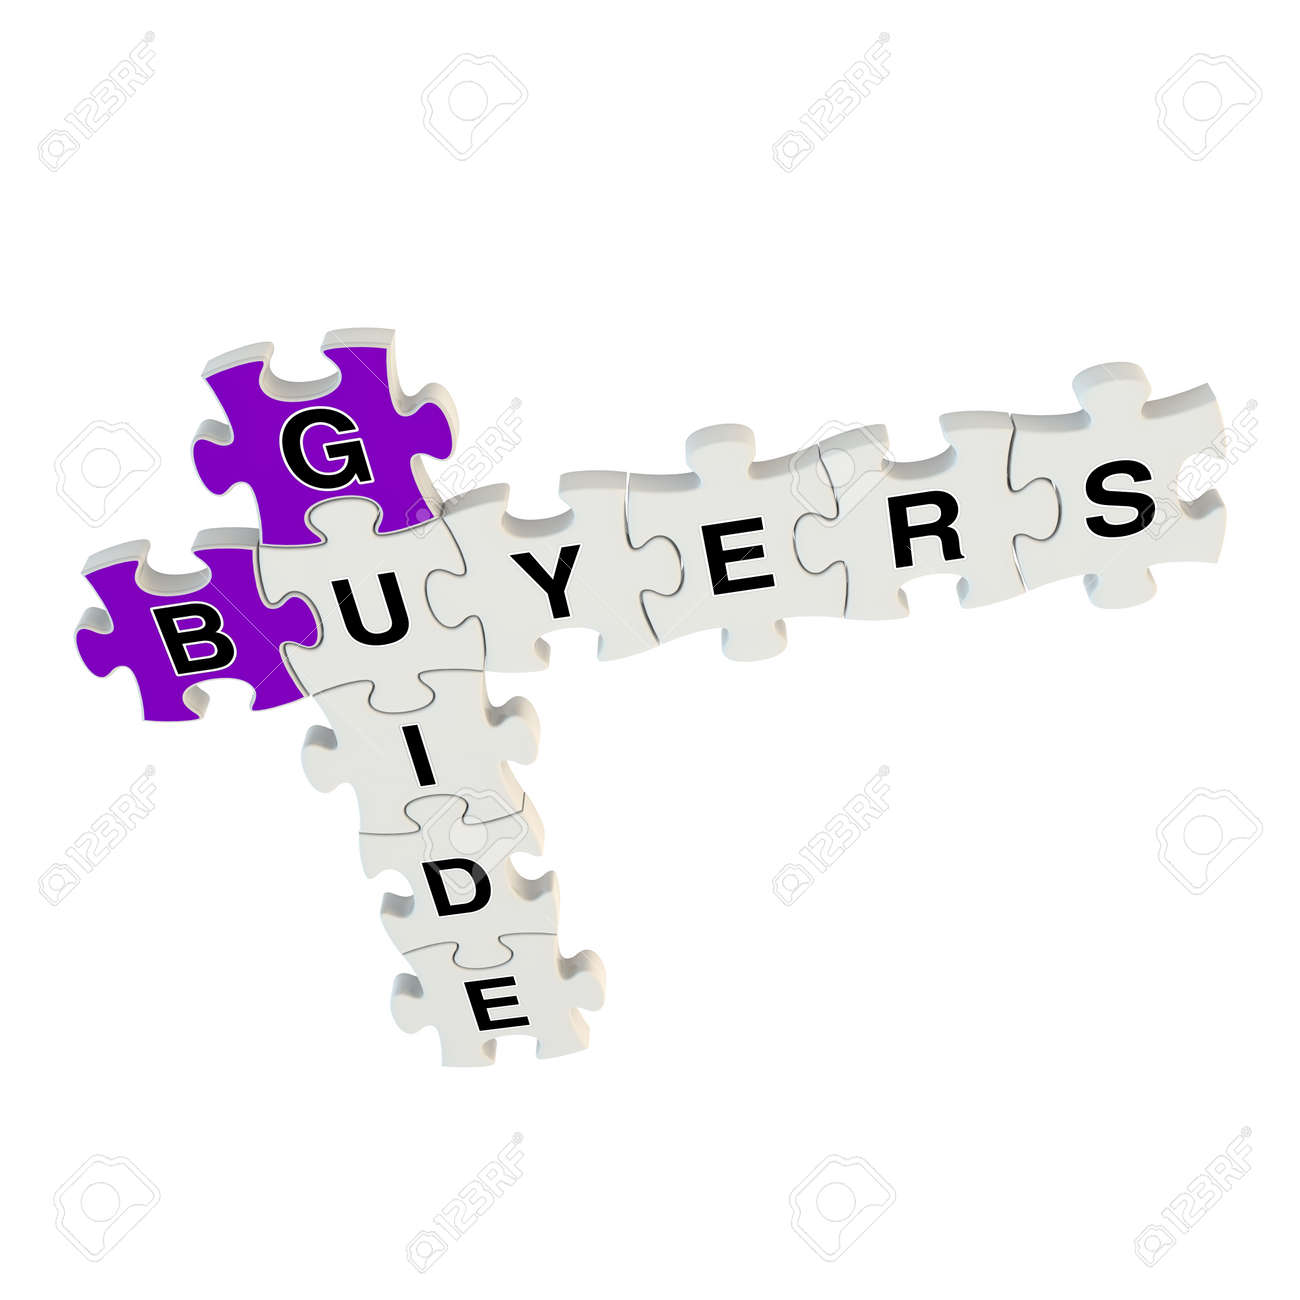 Buyers guide 3d puzzle on white background Stock Photo - 25878709